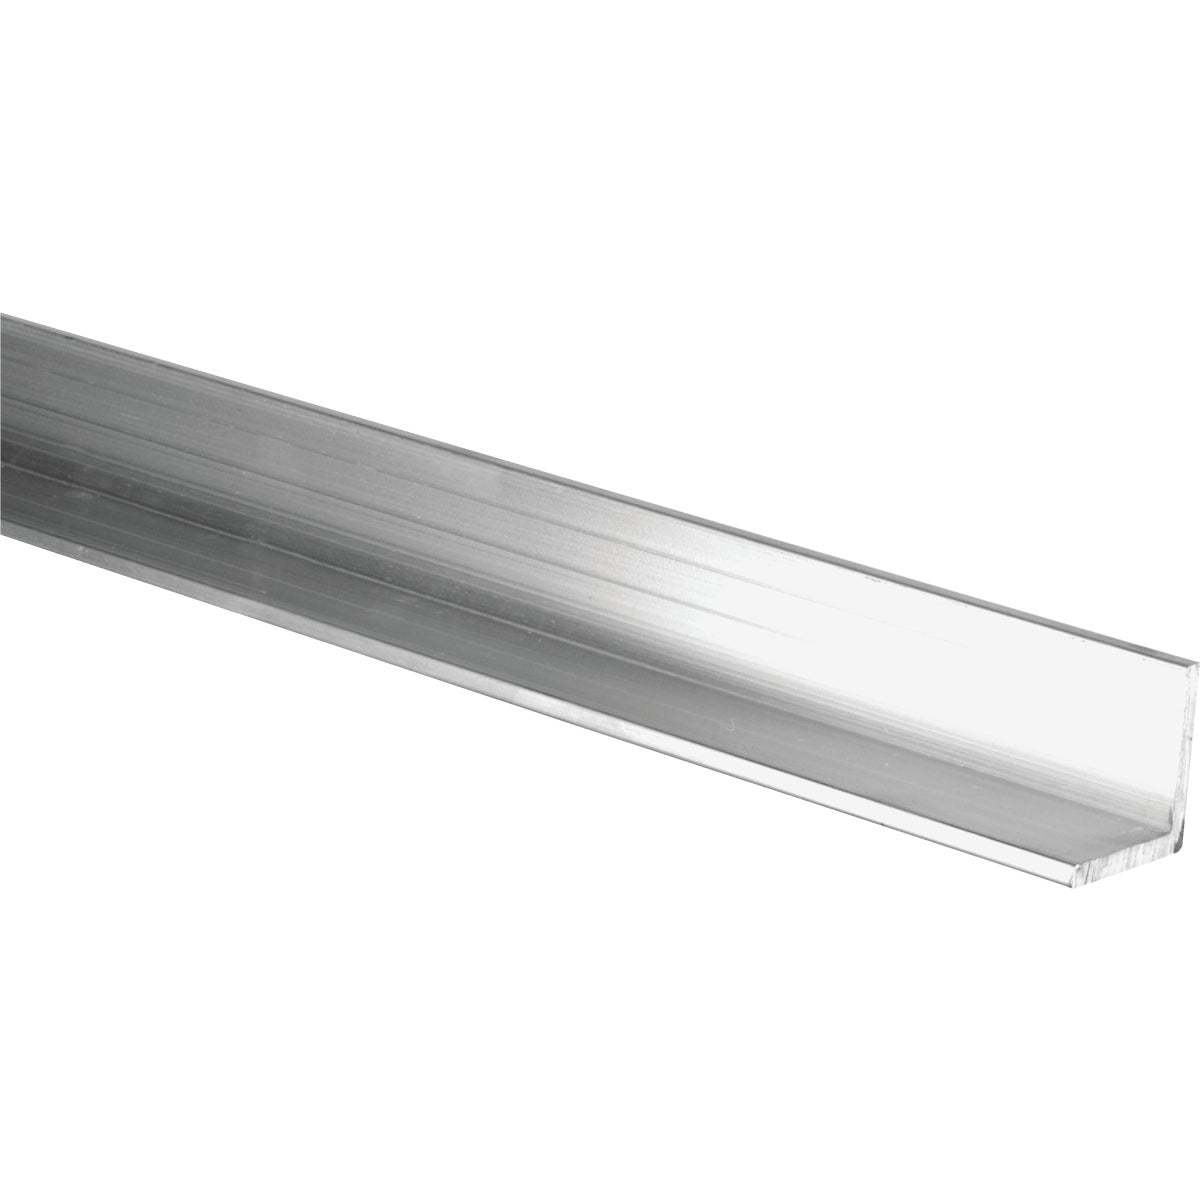 1/8X3/4X6' ALUM ANGLE - N247395 by National Mfg Co